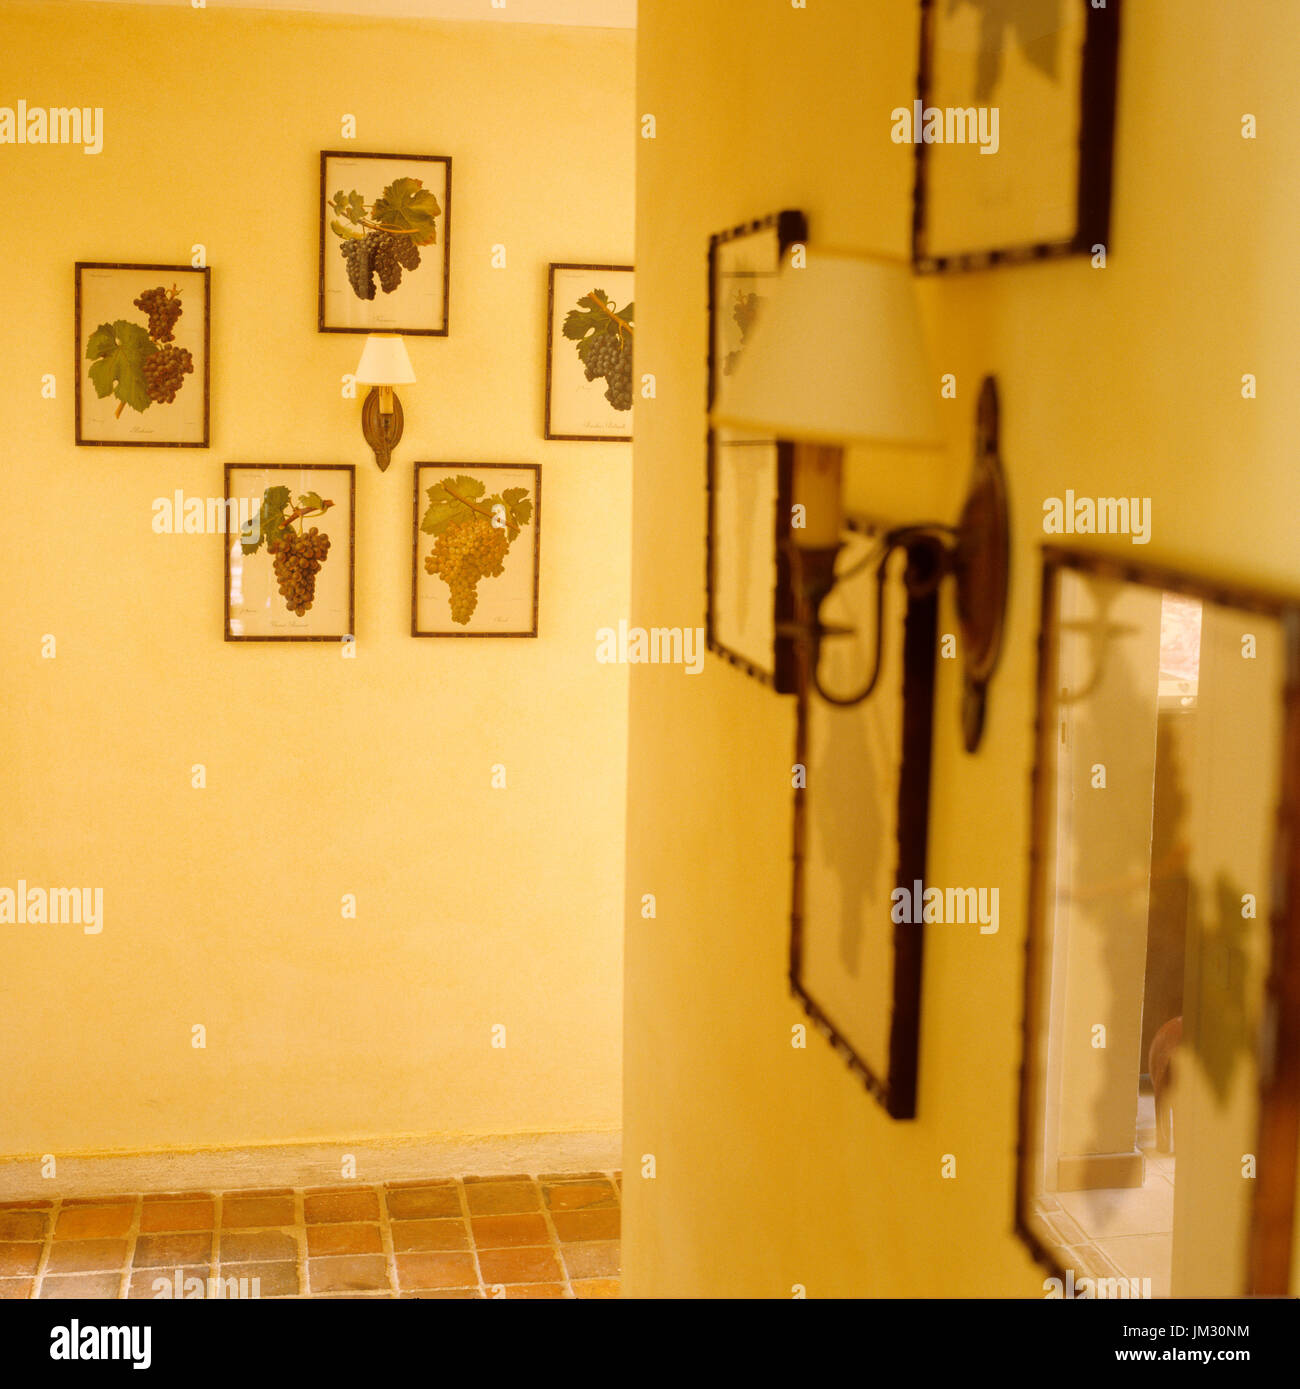 Muted stockfotos muted bilder alamy - Gelbe flecken an der wand ...